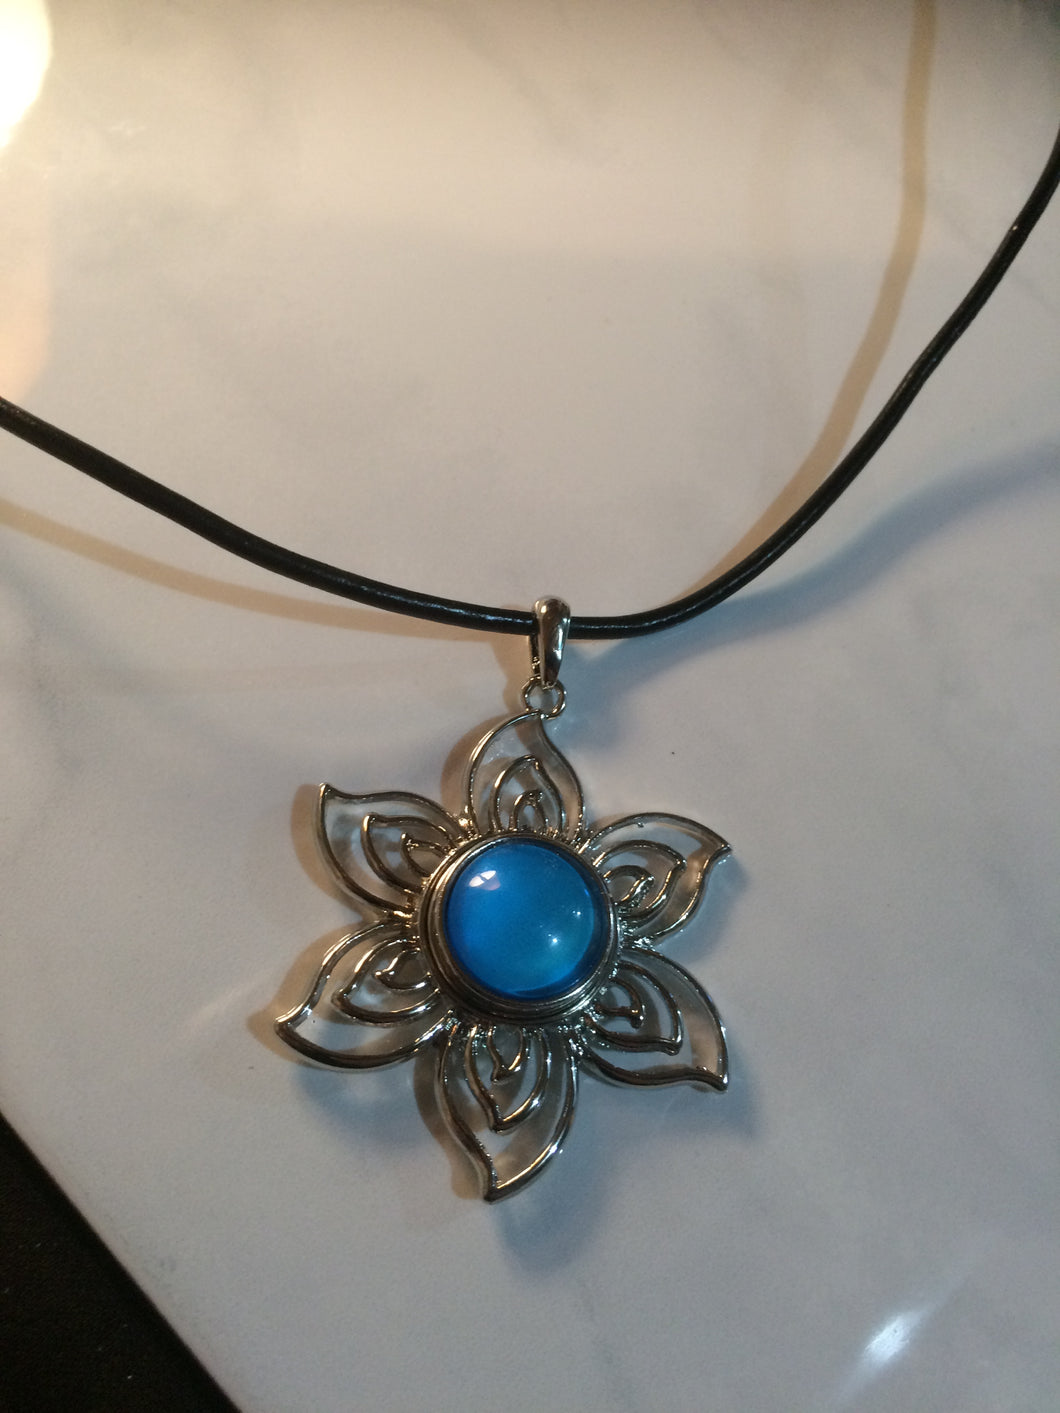 Starflower Pendant Necklace (2 Jewel Pops included!)